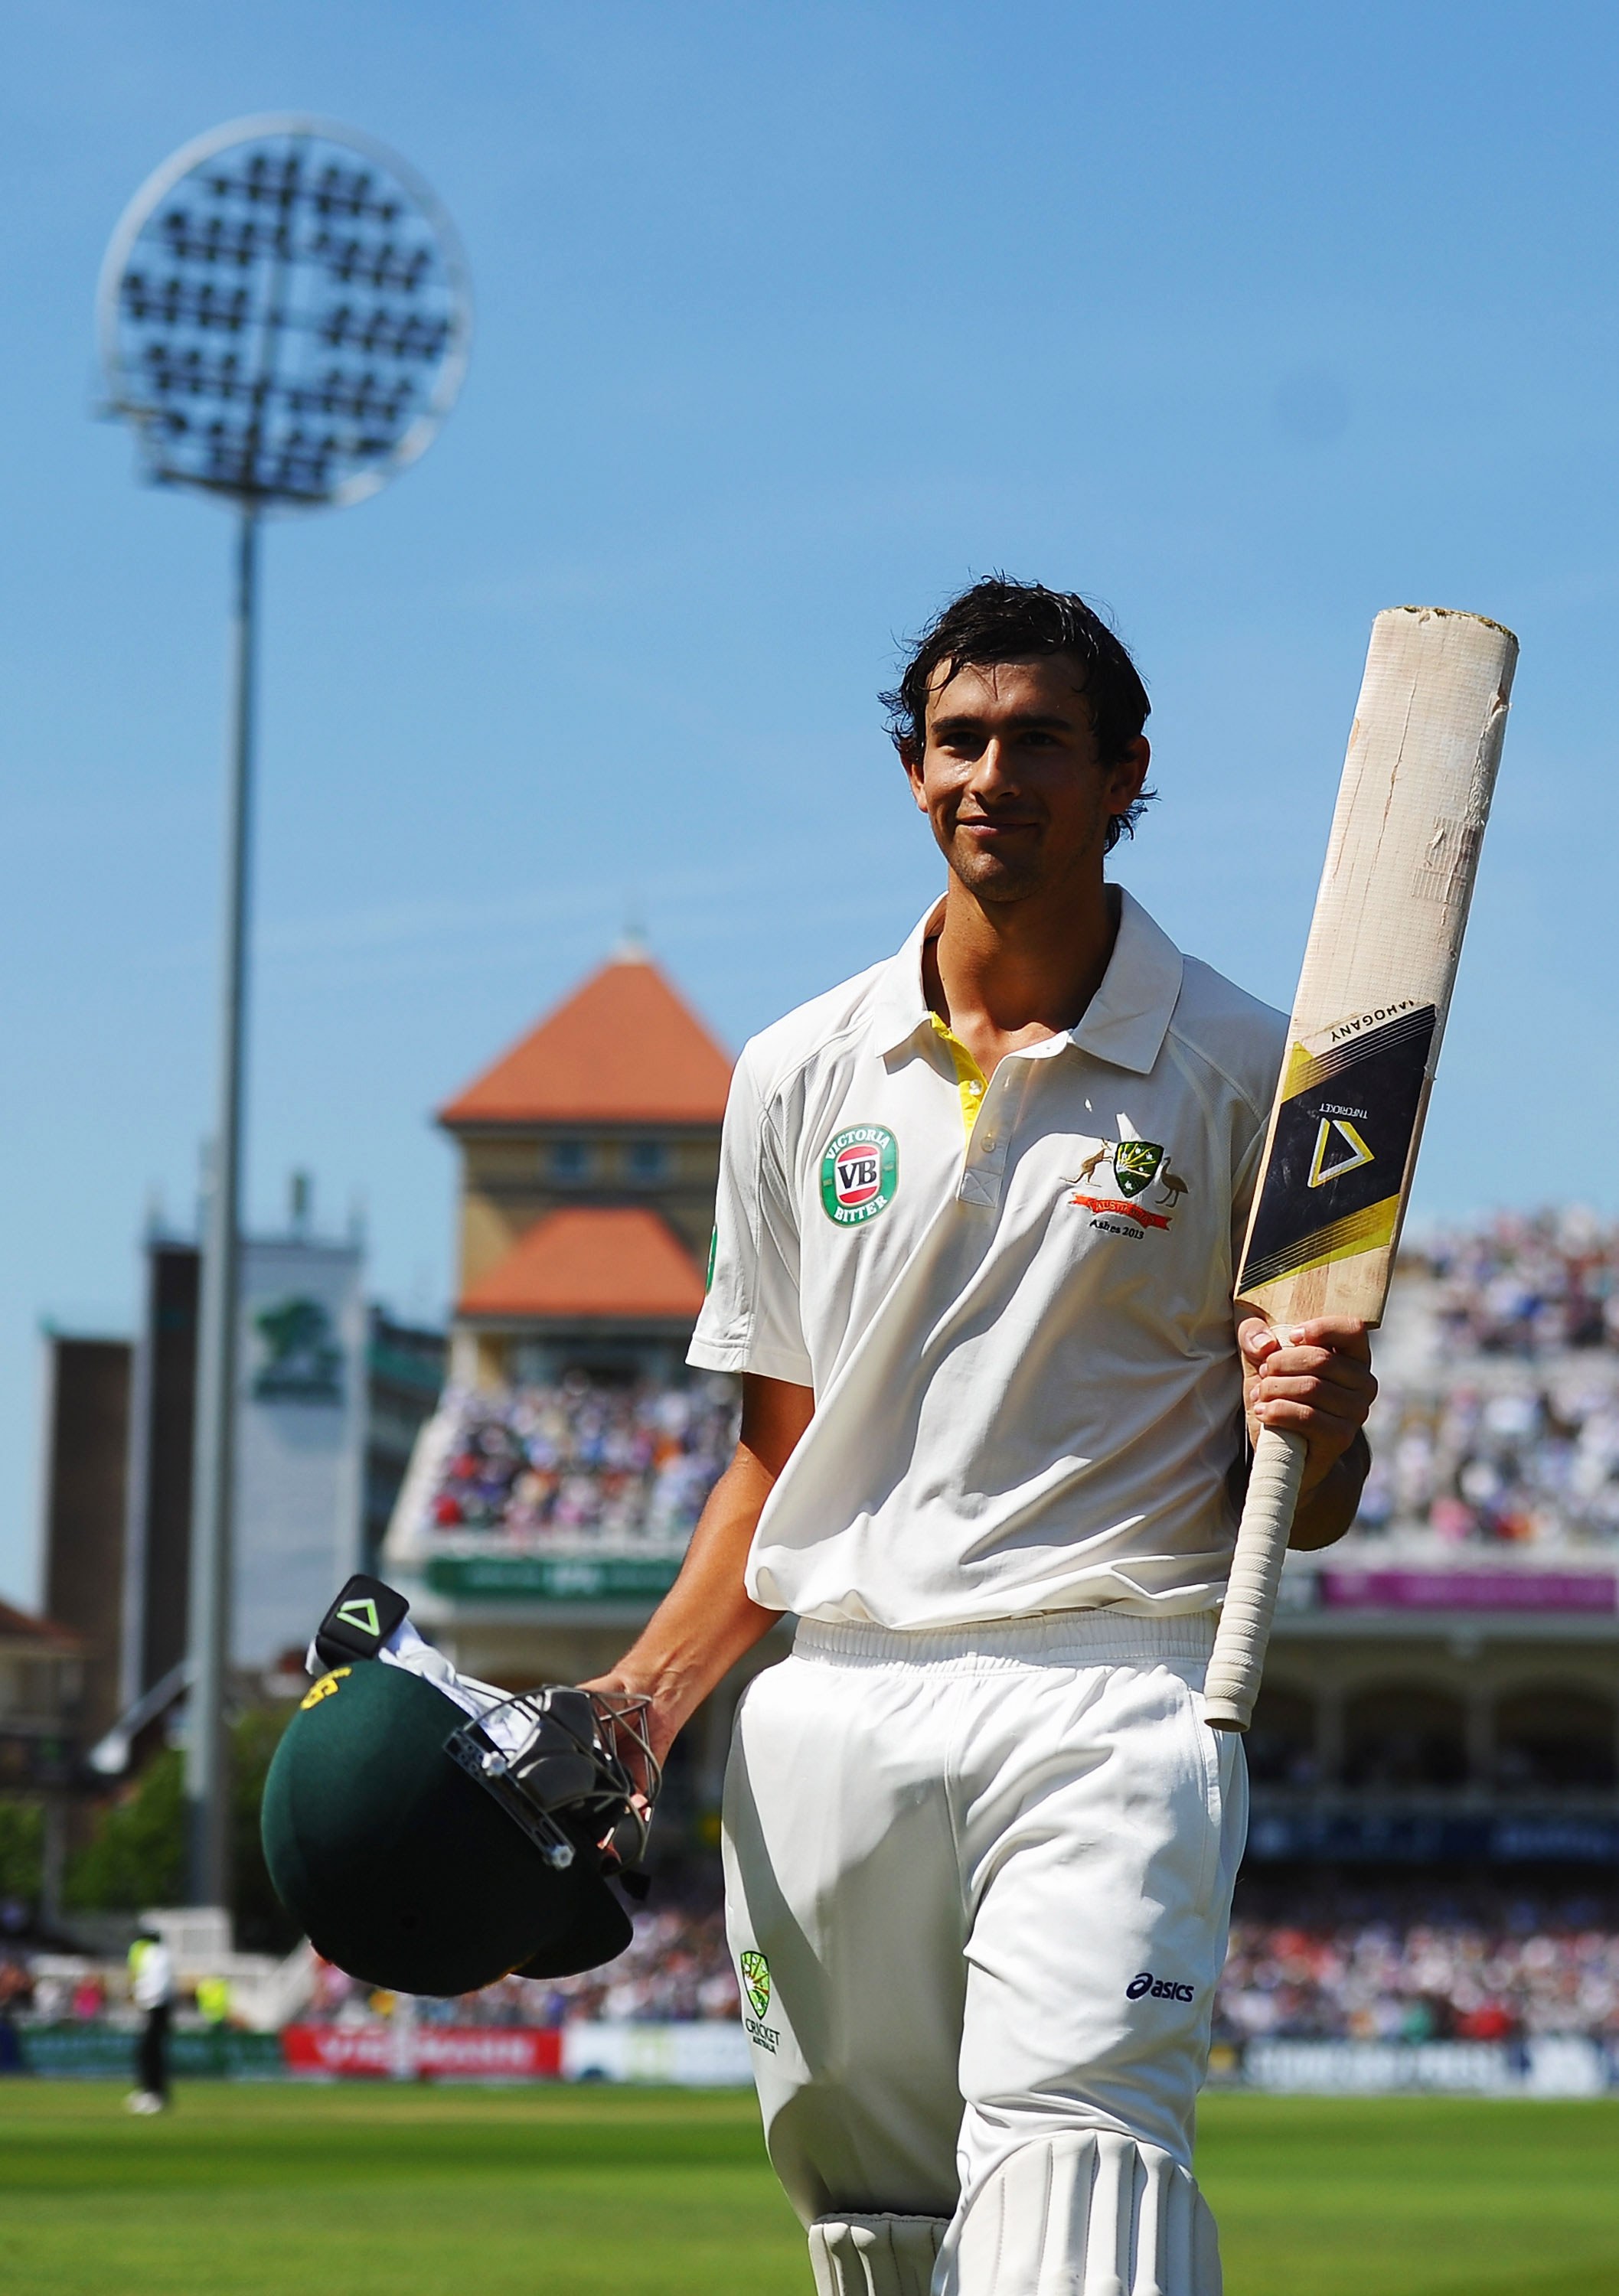 Ashton Agar's famous partnership with Phillip Hughes at Trent Bridge, Ashes 2015 // Getty Images